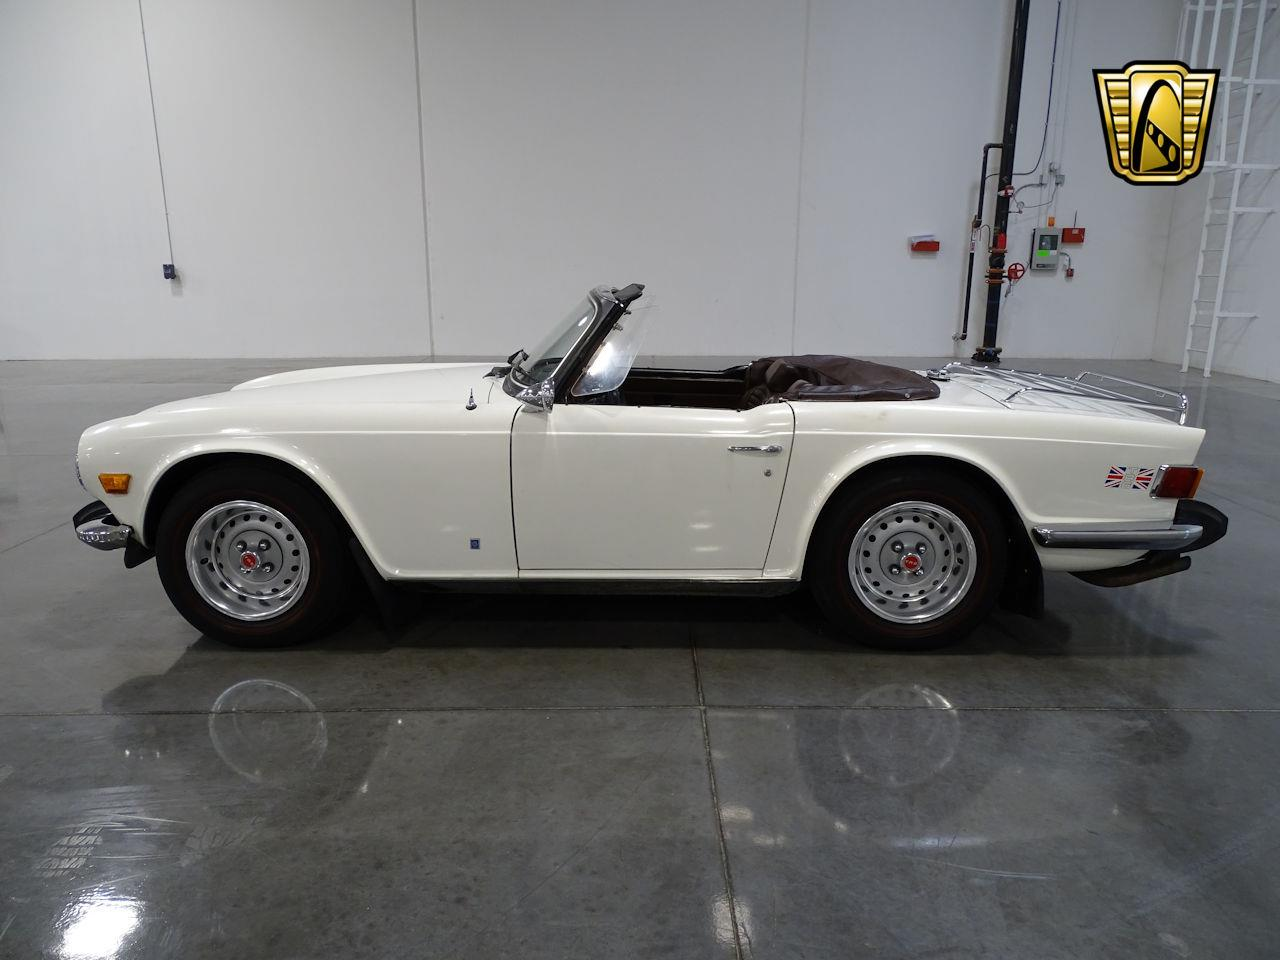 Large Picture of '74 Triumph TR6 located in Deer Valley Arizona - $18,995.00 - MCYM